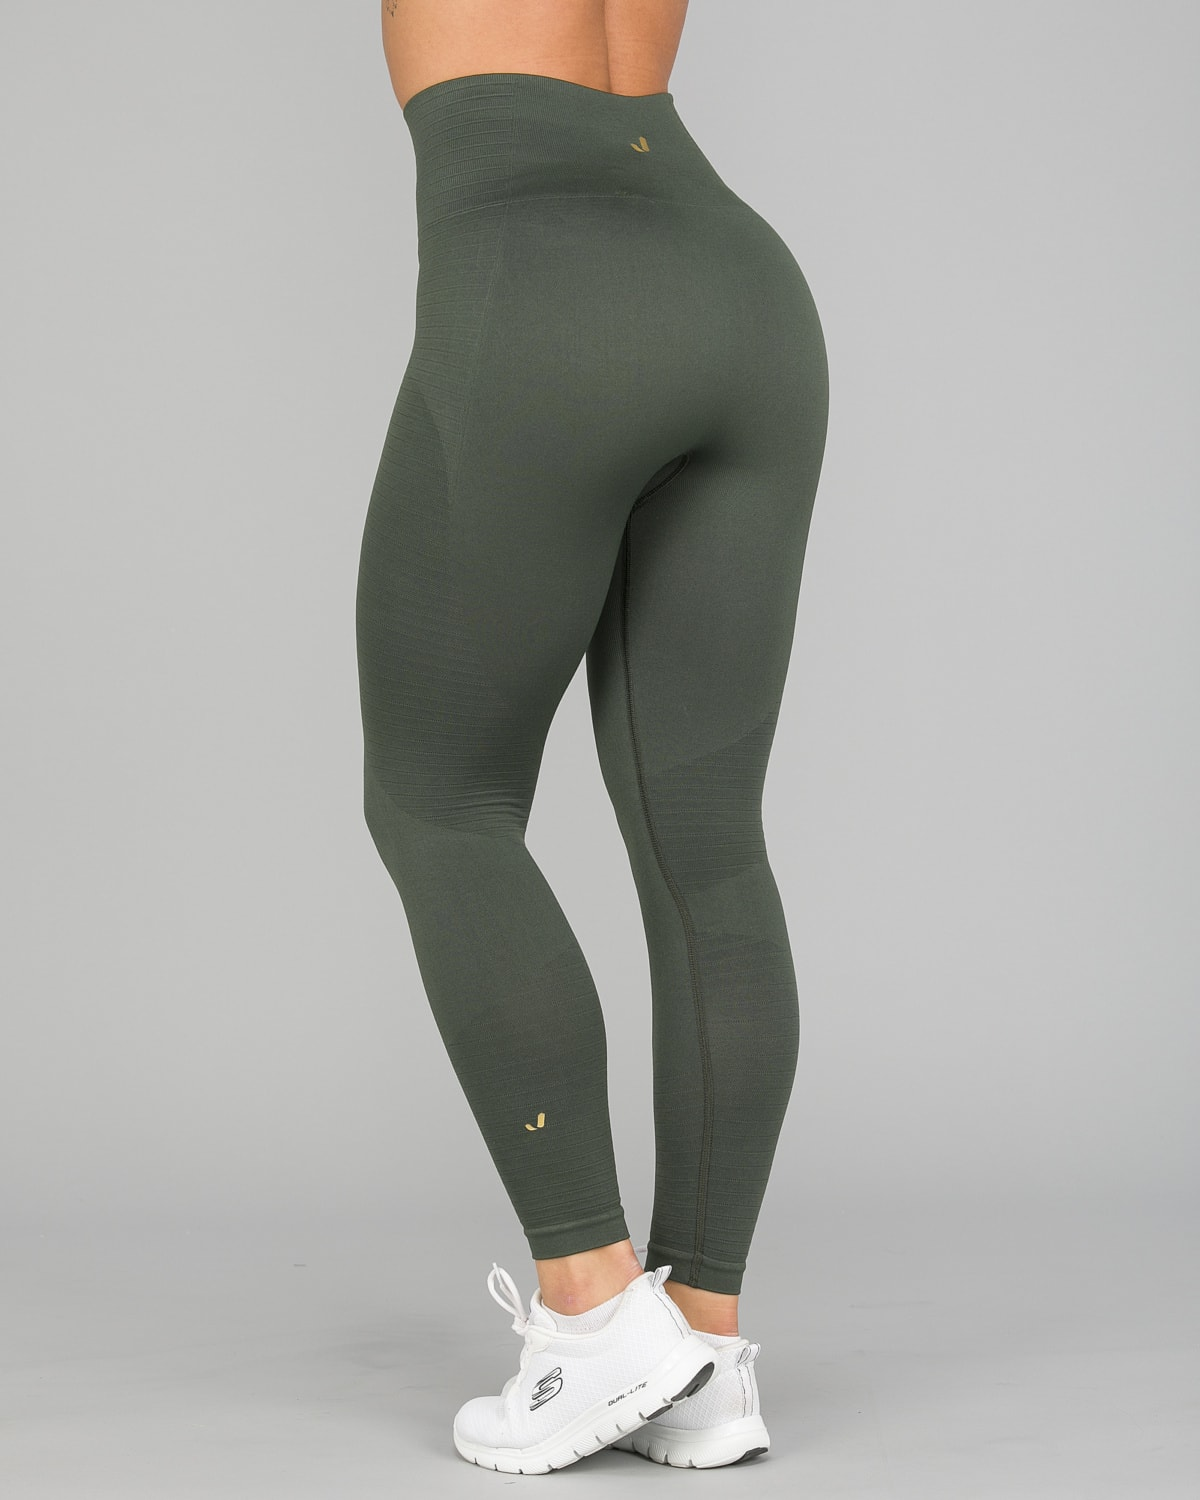 Jerf Gela 2.0 tights dark green4